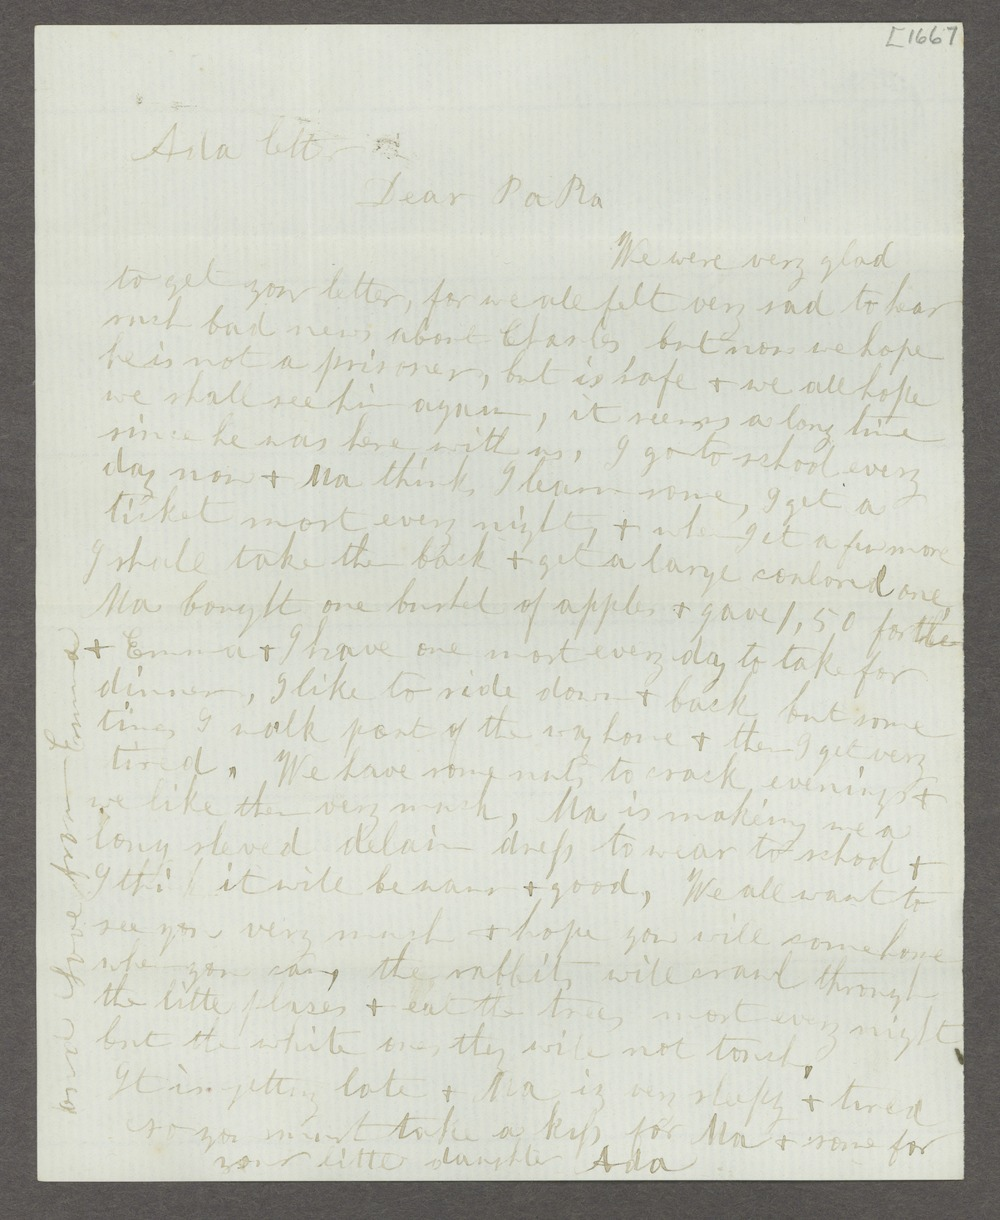 Correspondence between Samuel Lyle Adair, Florella Brown Adair, and their children - 212